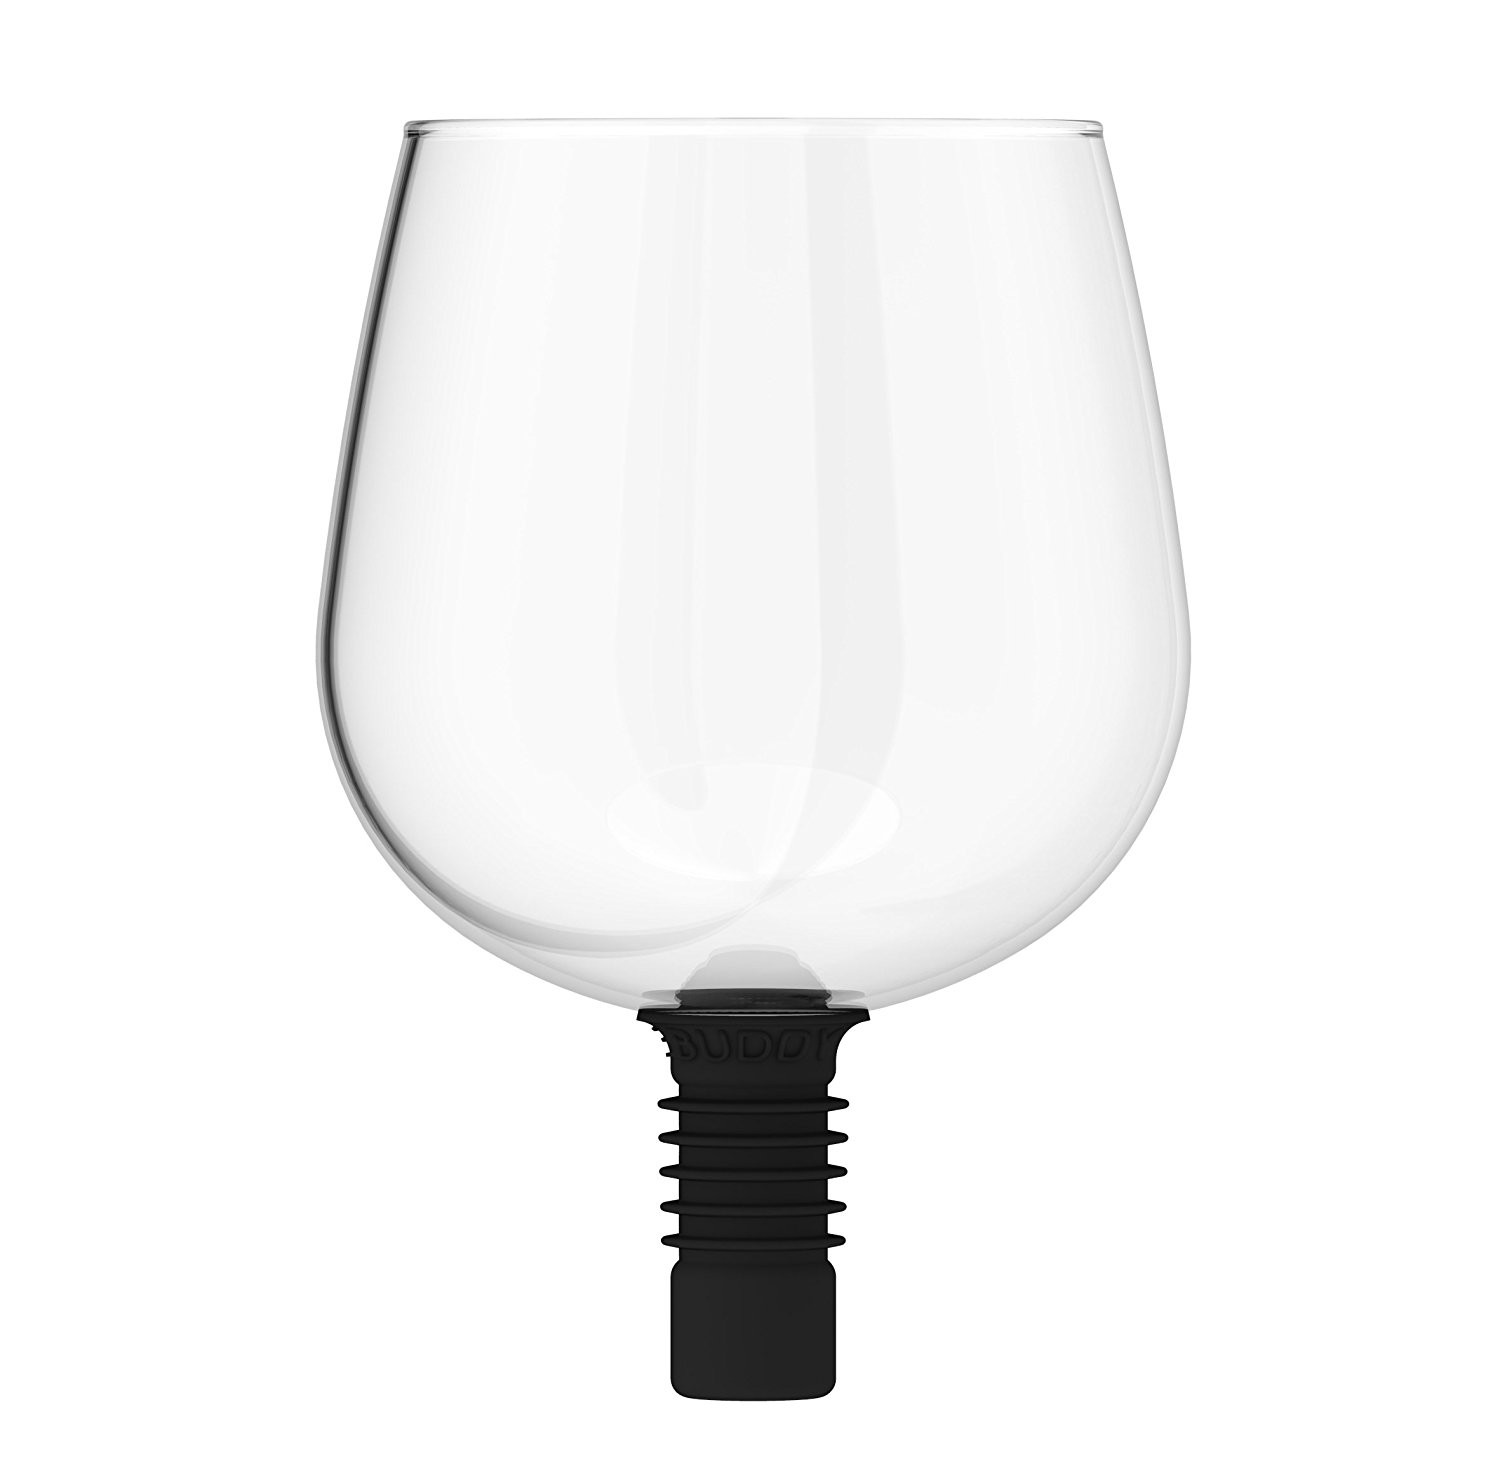 extra large martini glass vase of amazon com guzzle buddy wine bottle glass 16 oz it turns your within amazon com guzzle buddy wine bottle glass 16 oz it turns your bottle of wine into your wine glass the original as seen on shark tank wine glasses